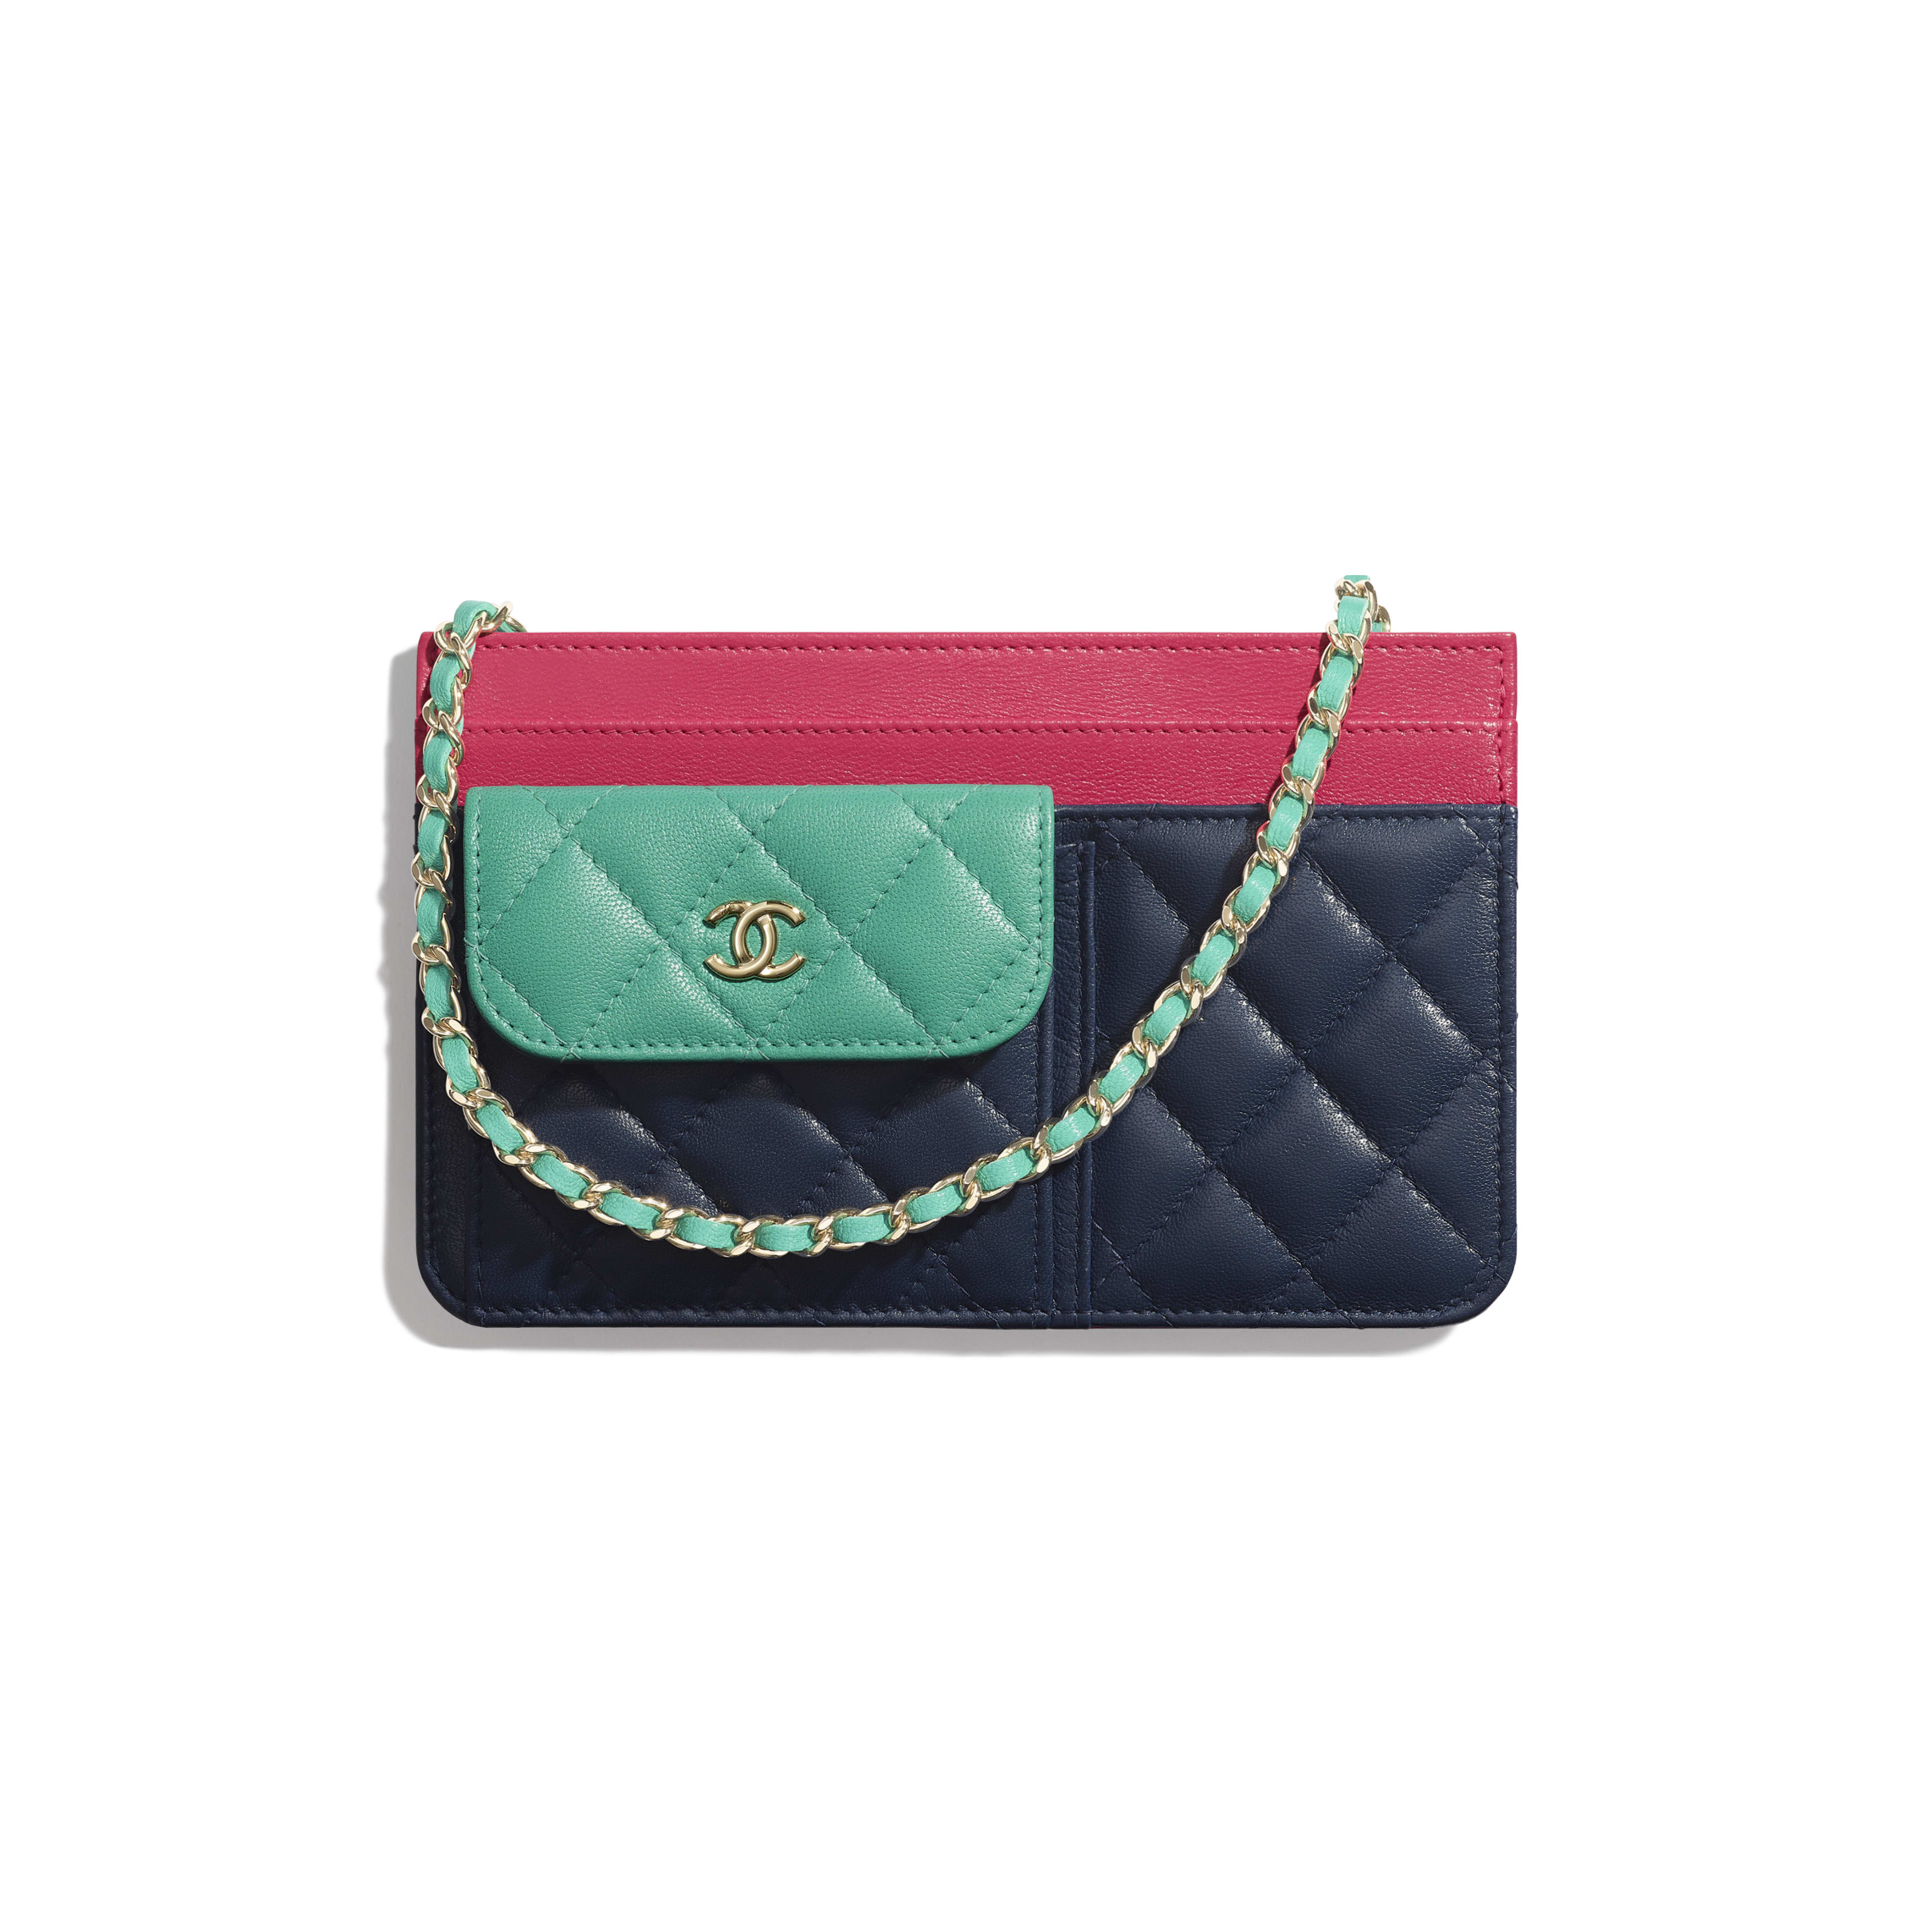 Wallet On Chain - Navy Blue, Green & Dark Pink - Goatskin & Gold-Tone Metal - Default view - see full sized version